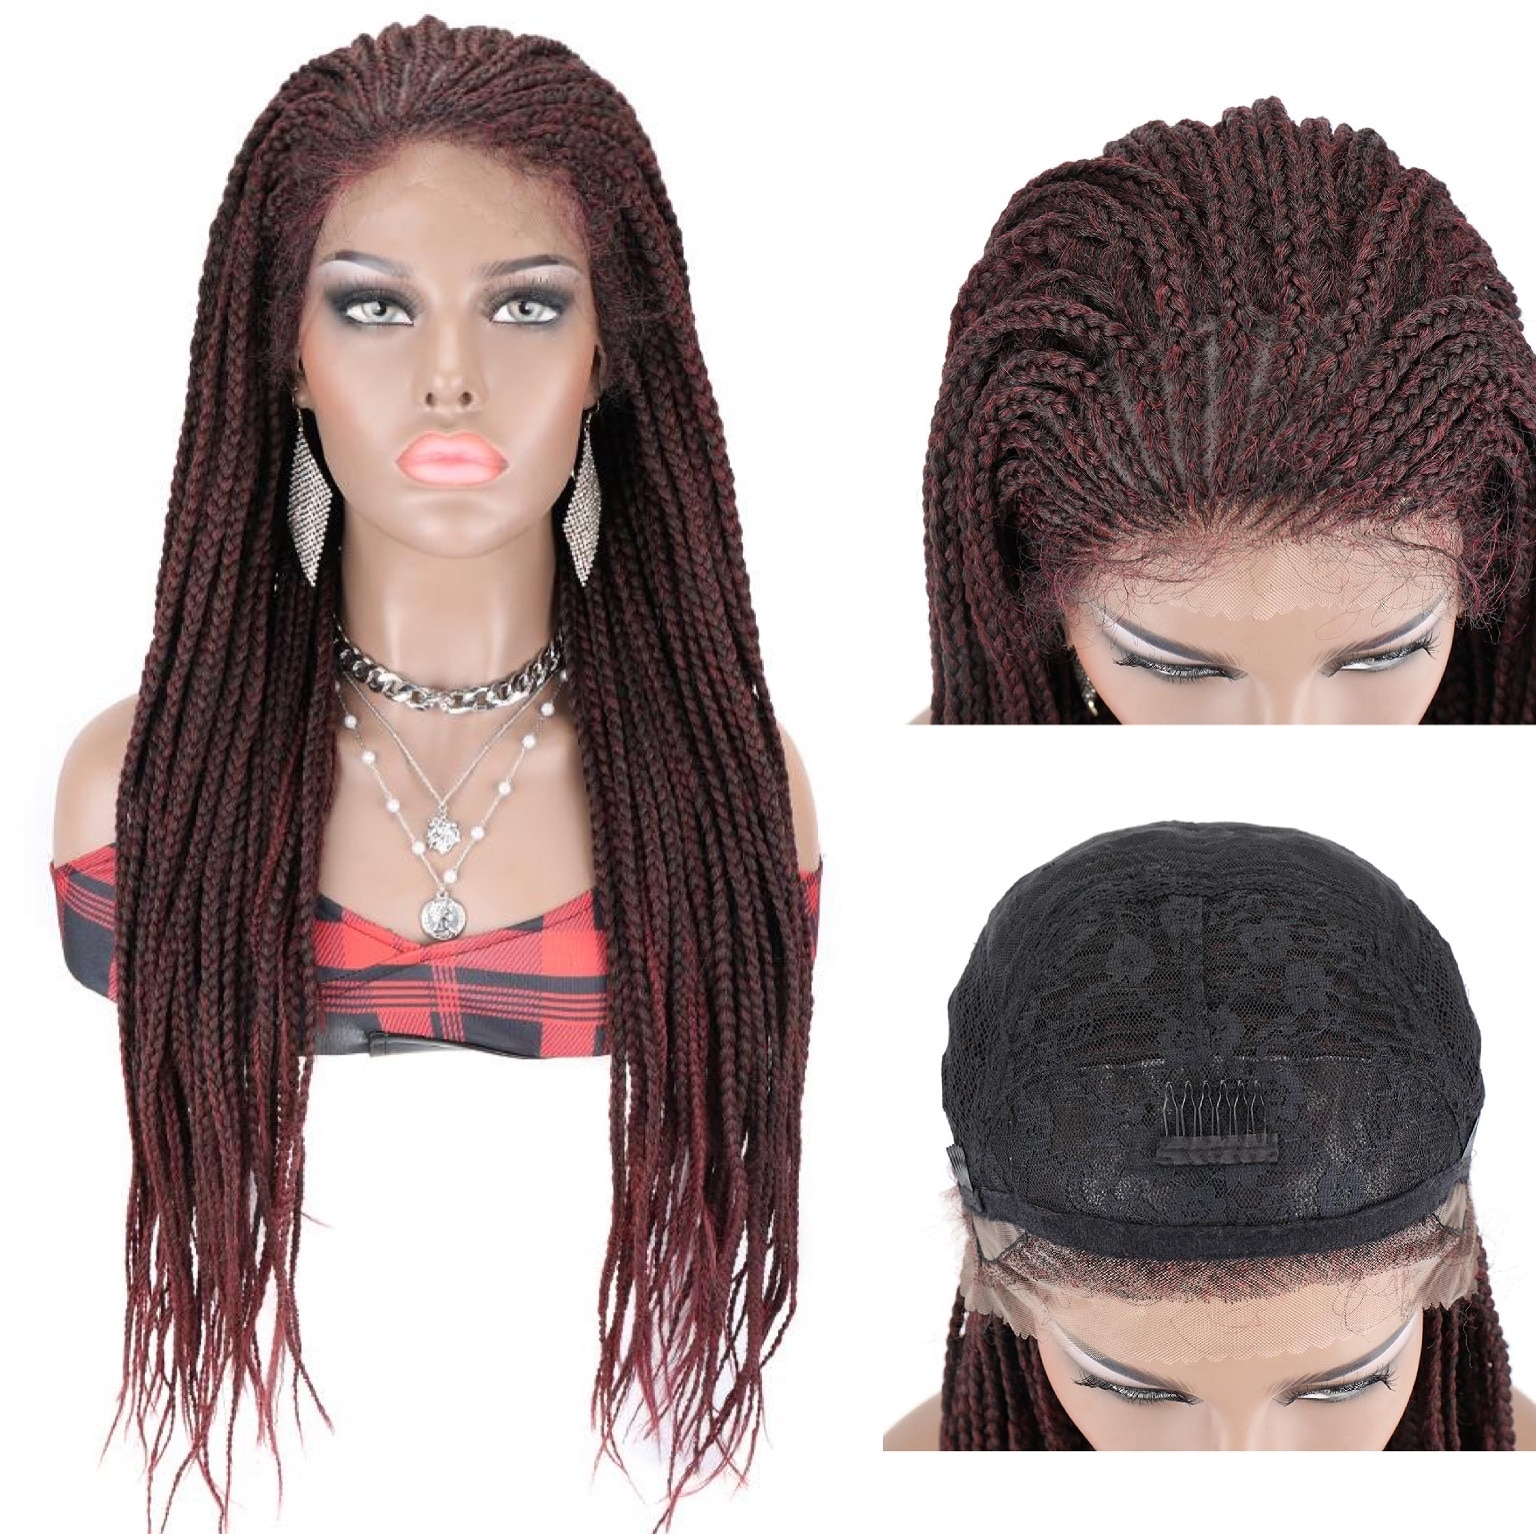 Braided Wig Braiding Hair Lace Front Lace Synthetic Wig TOOCCI Braided Wigs 30 Inch Crochet Long Lace Wigs For African Women